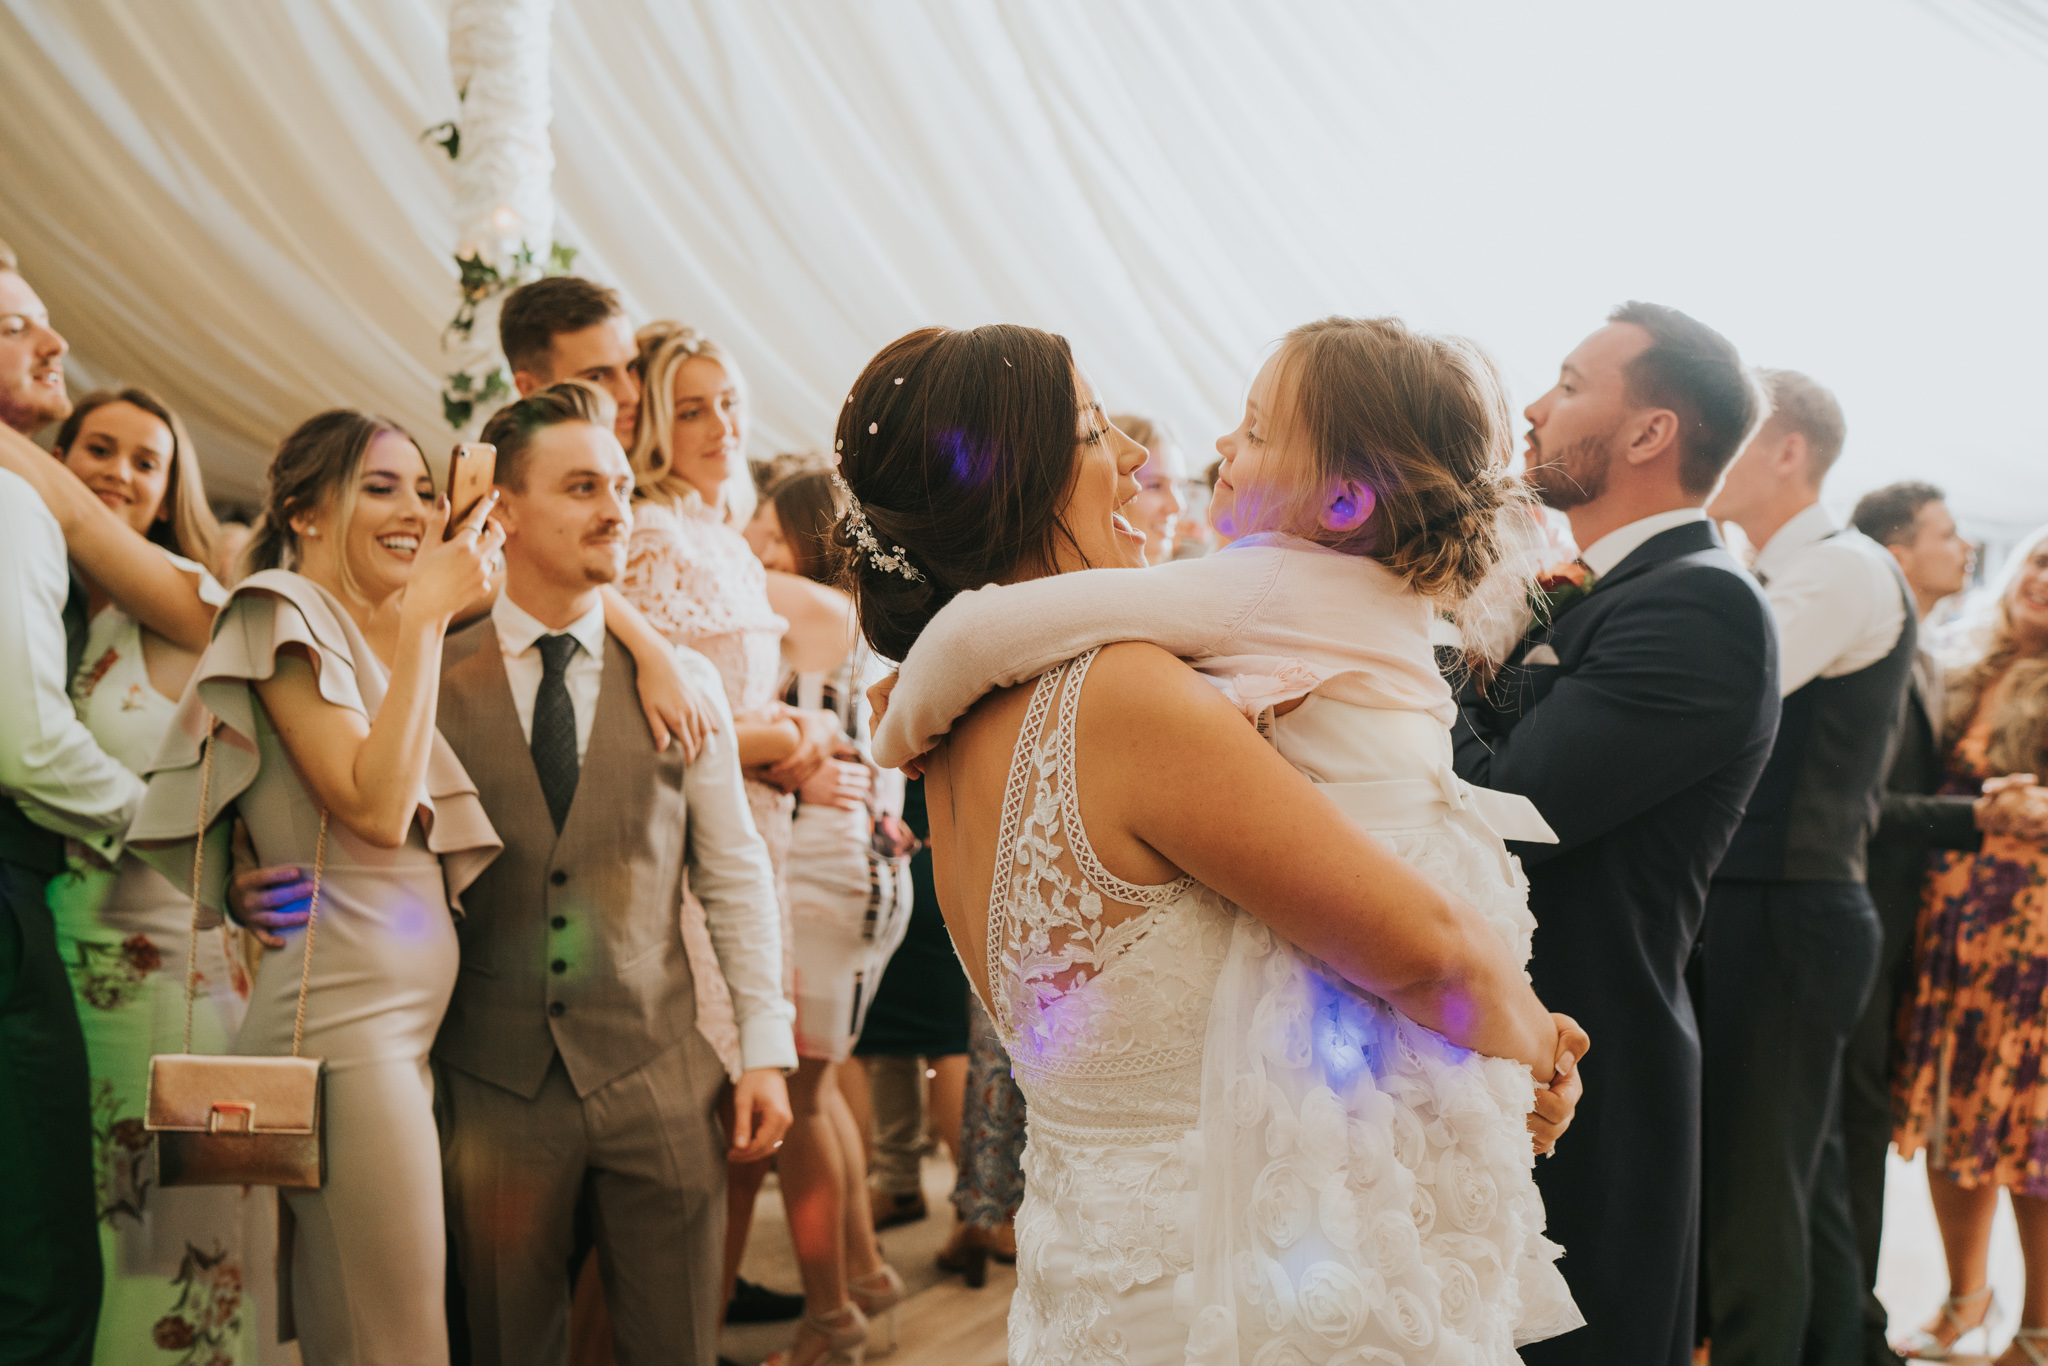 sophie-mark-newland-hall-boho-wedding-grace-elizanbeth-alternative-wedding-photographer-colchester-essex-norfolk-suffolk-devon (156 of 161).jpg